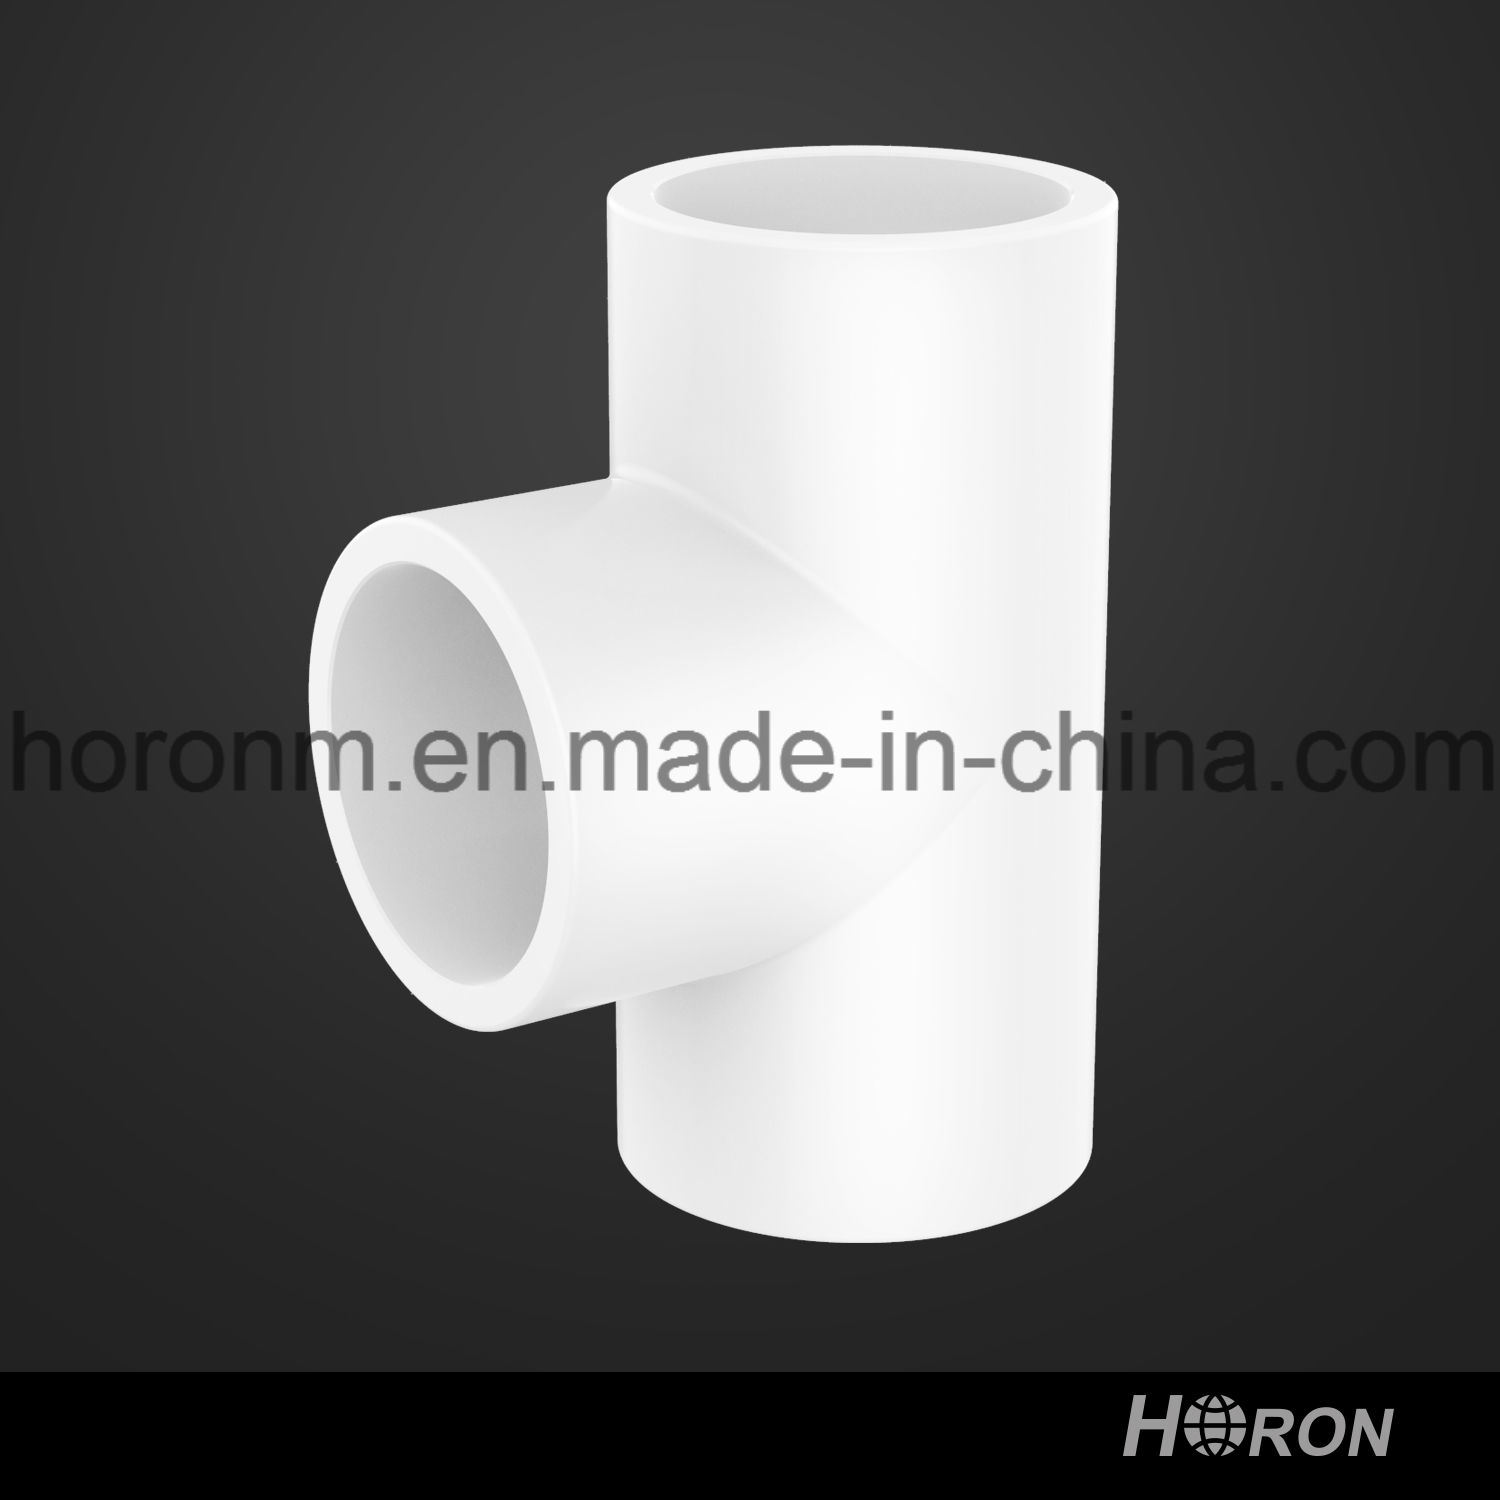 Water Pipe-UPVC Pipe-UPVC Tube-ASTM UPVC Pipe-UPVC ASTM Sch40 Water Pipe-PVC Pipe